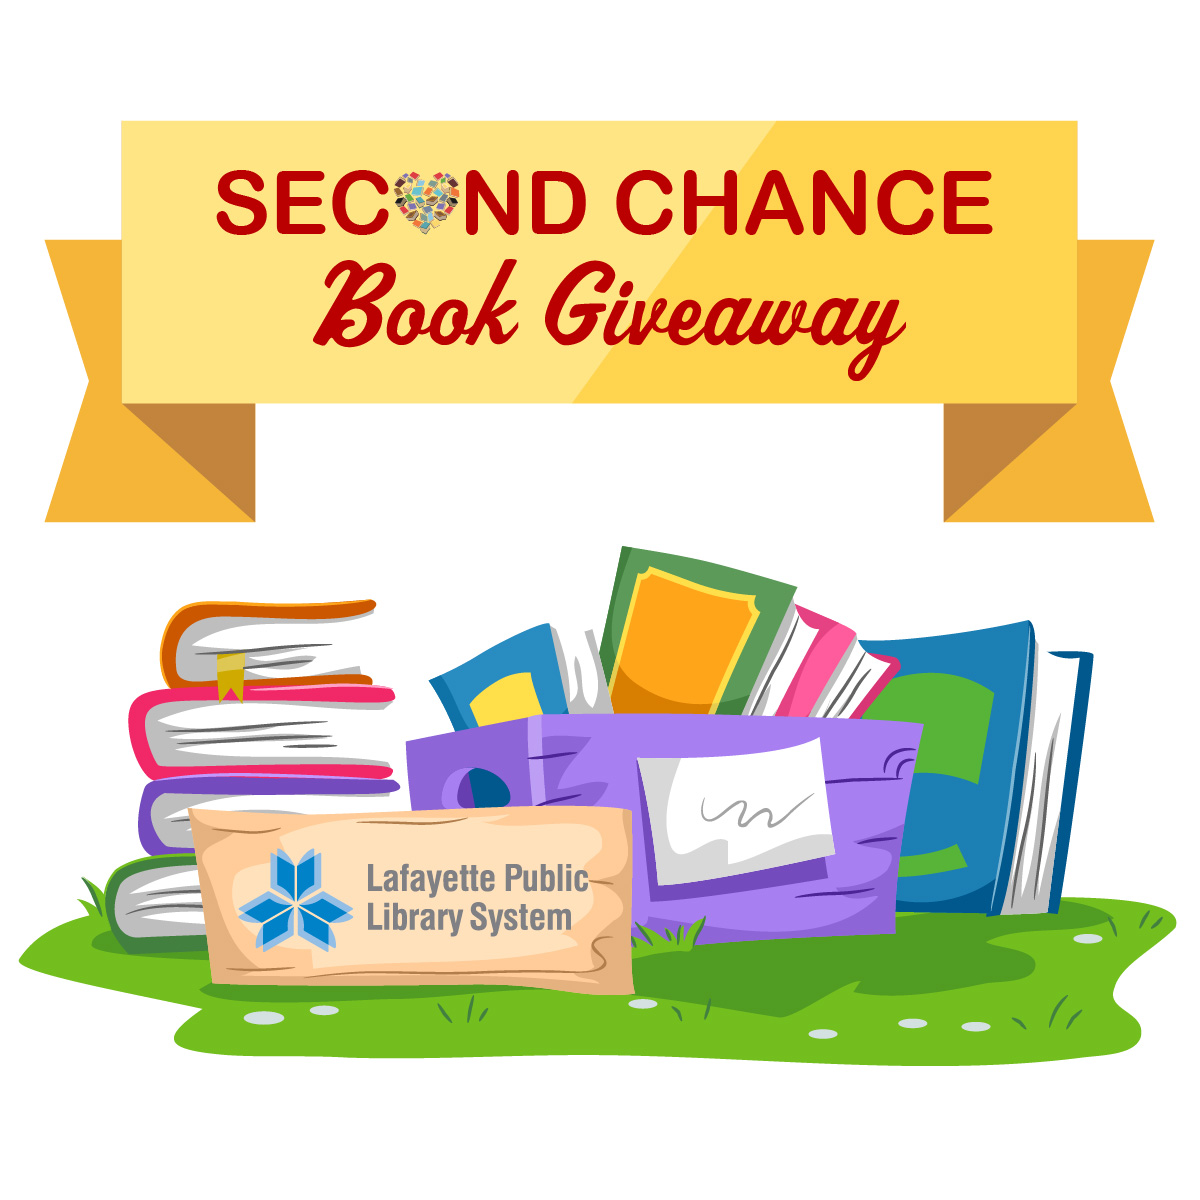 Second Chance Book Giveaway: South Regional Library